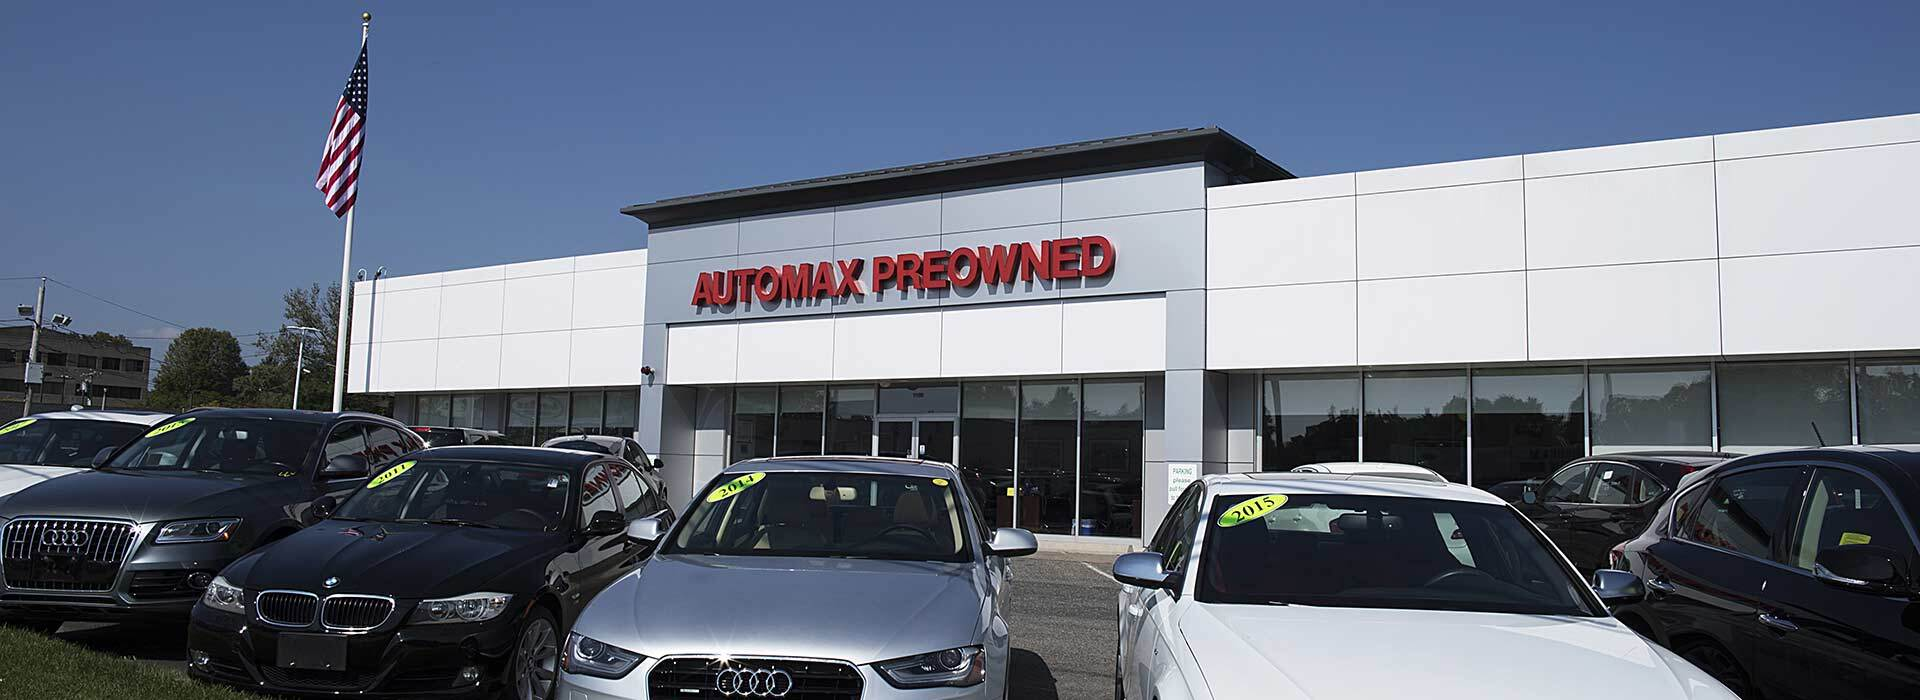 Automax Preowned Experience The Difference